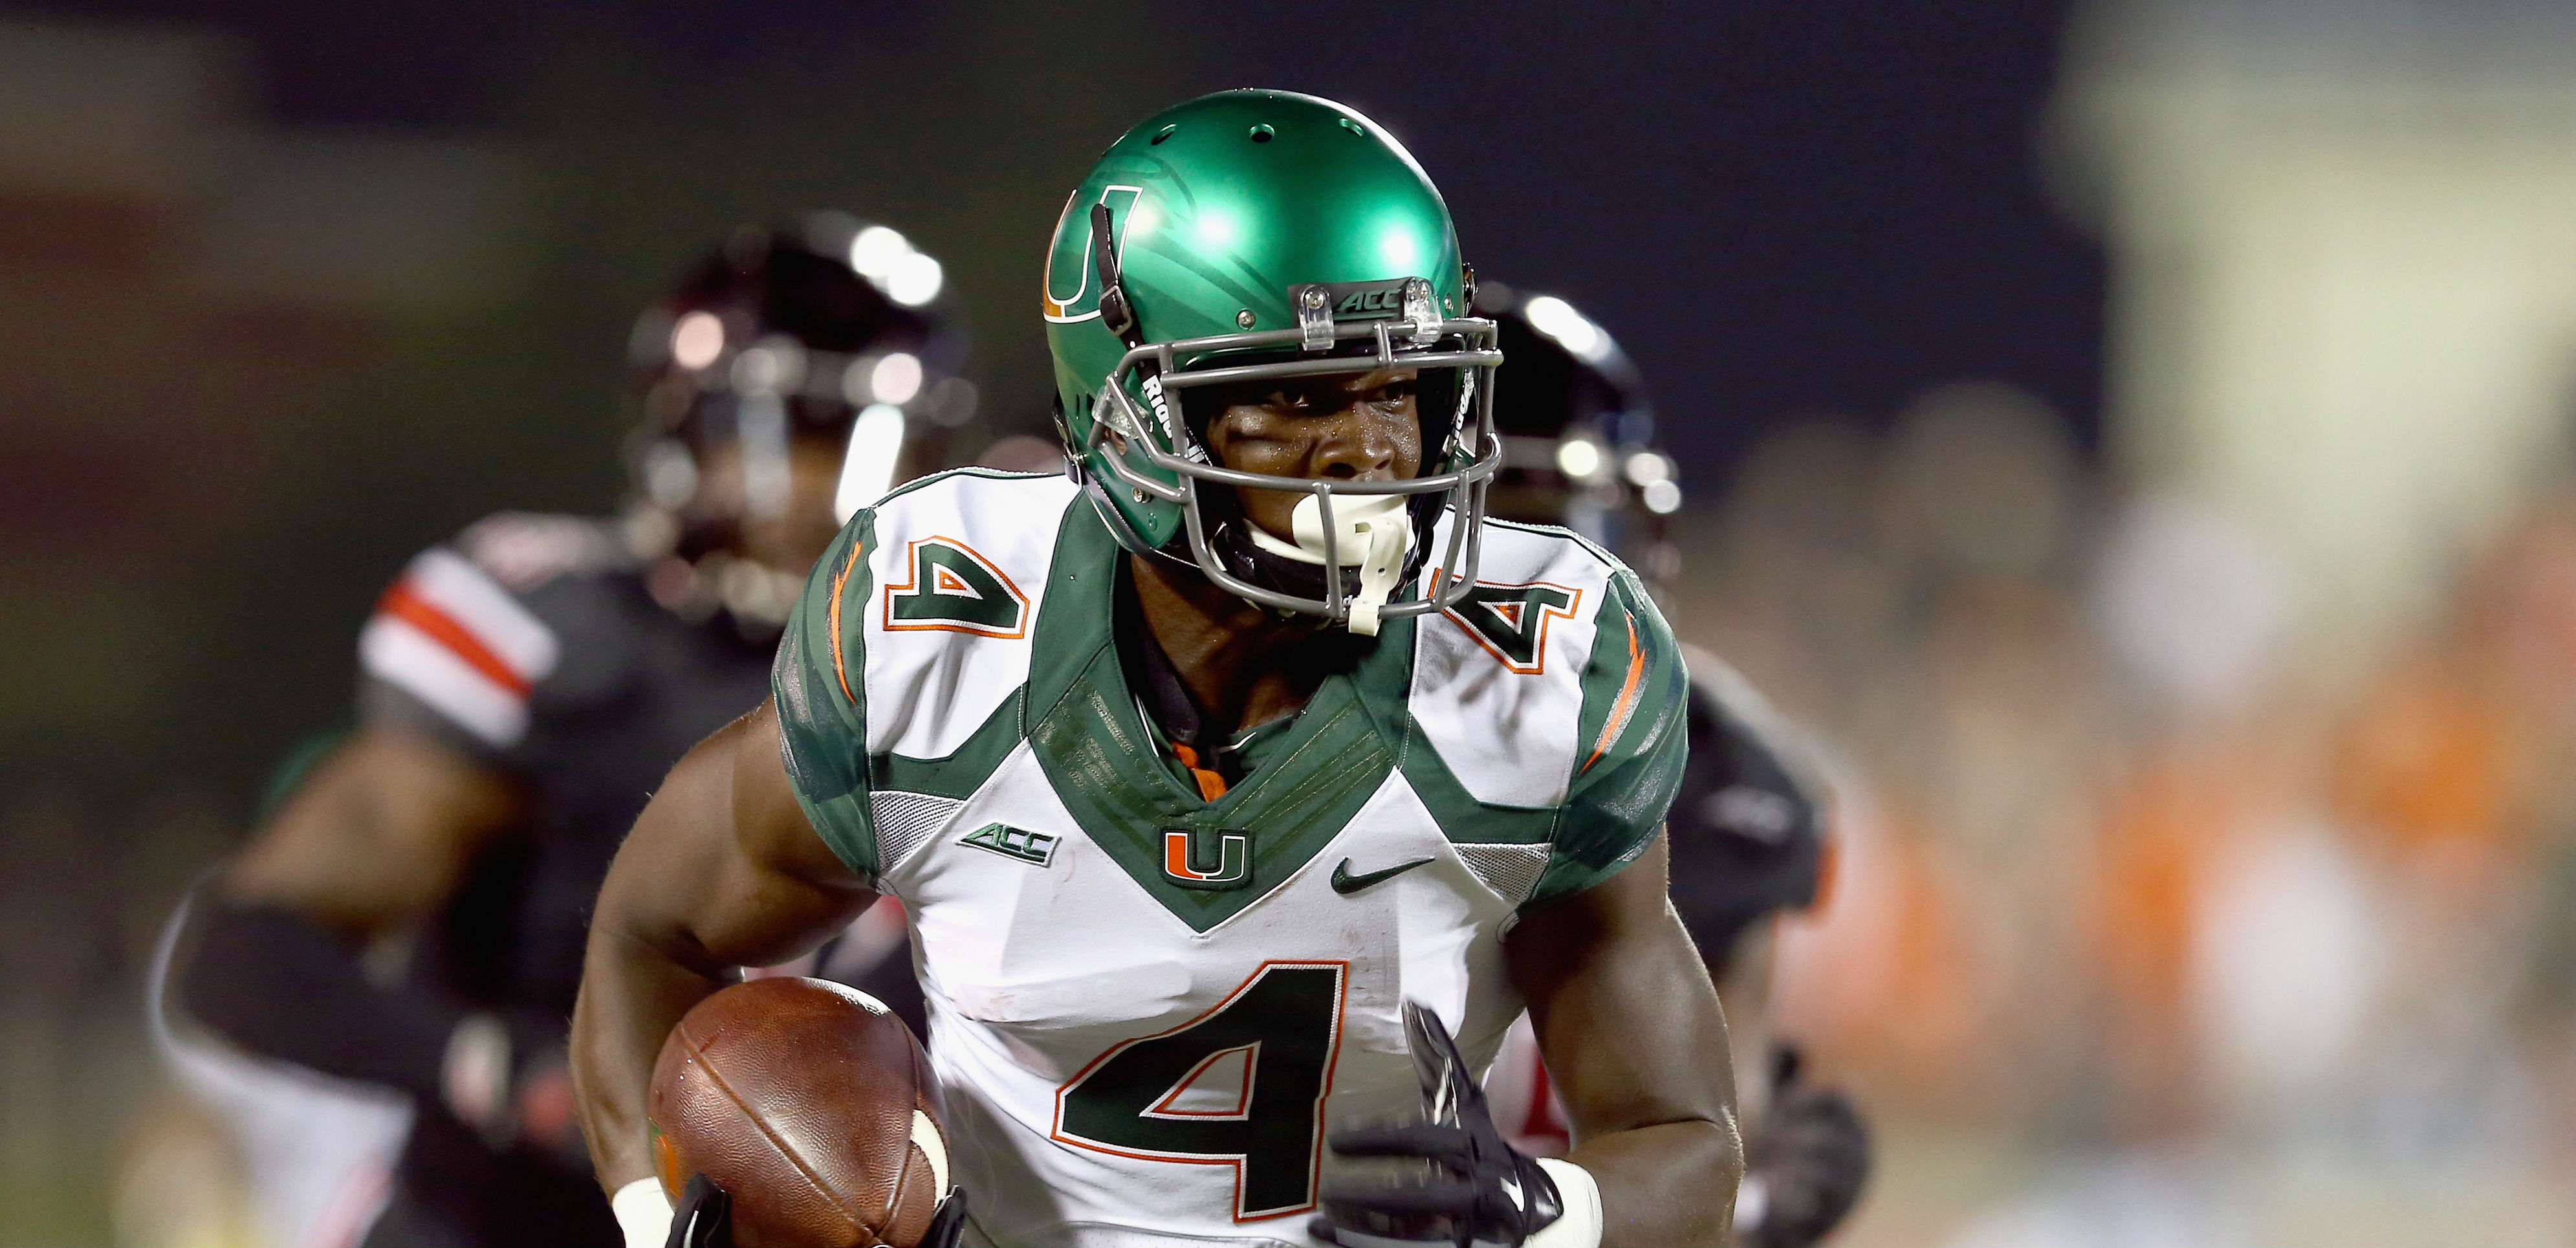 LOUISVILLE, KY - SEPTEMBER 01: Phillip Dorsett #4 of the Miami Huricanes runs with the ball during the game against the Louisville Cardinals at Papa John's Cardinal Stadium on September 1, 2014 in Louisville, Kentucky. (Photo by Andy Lyons/Getty Images)